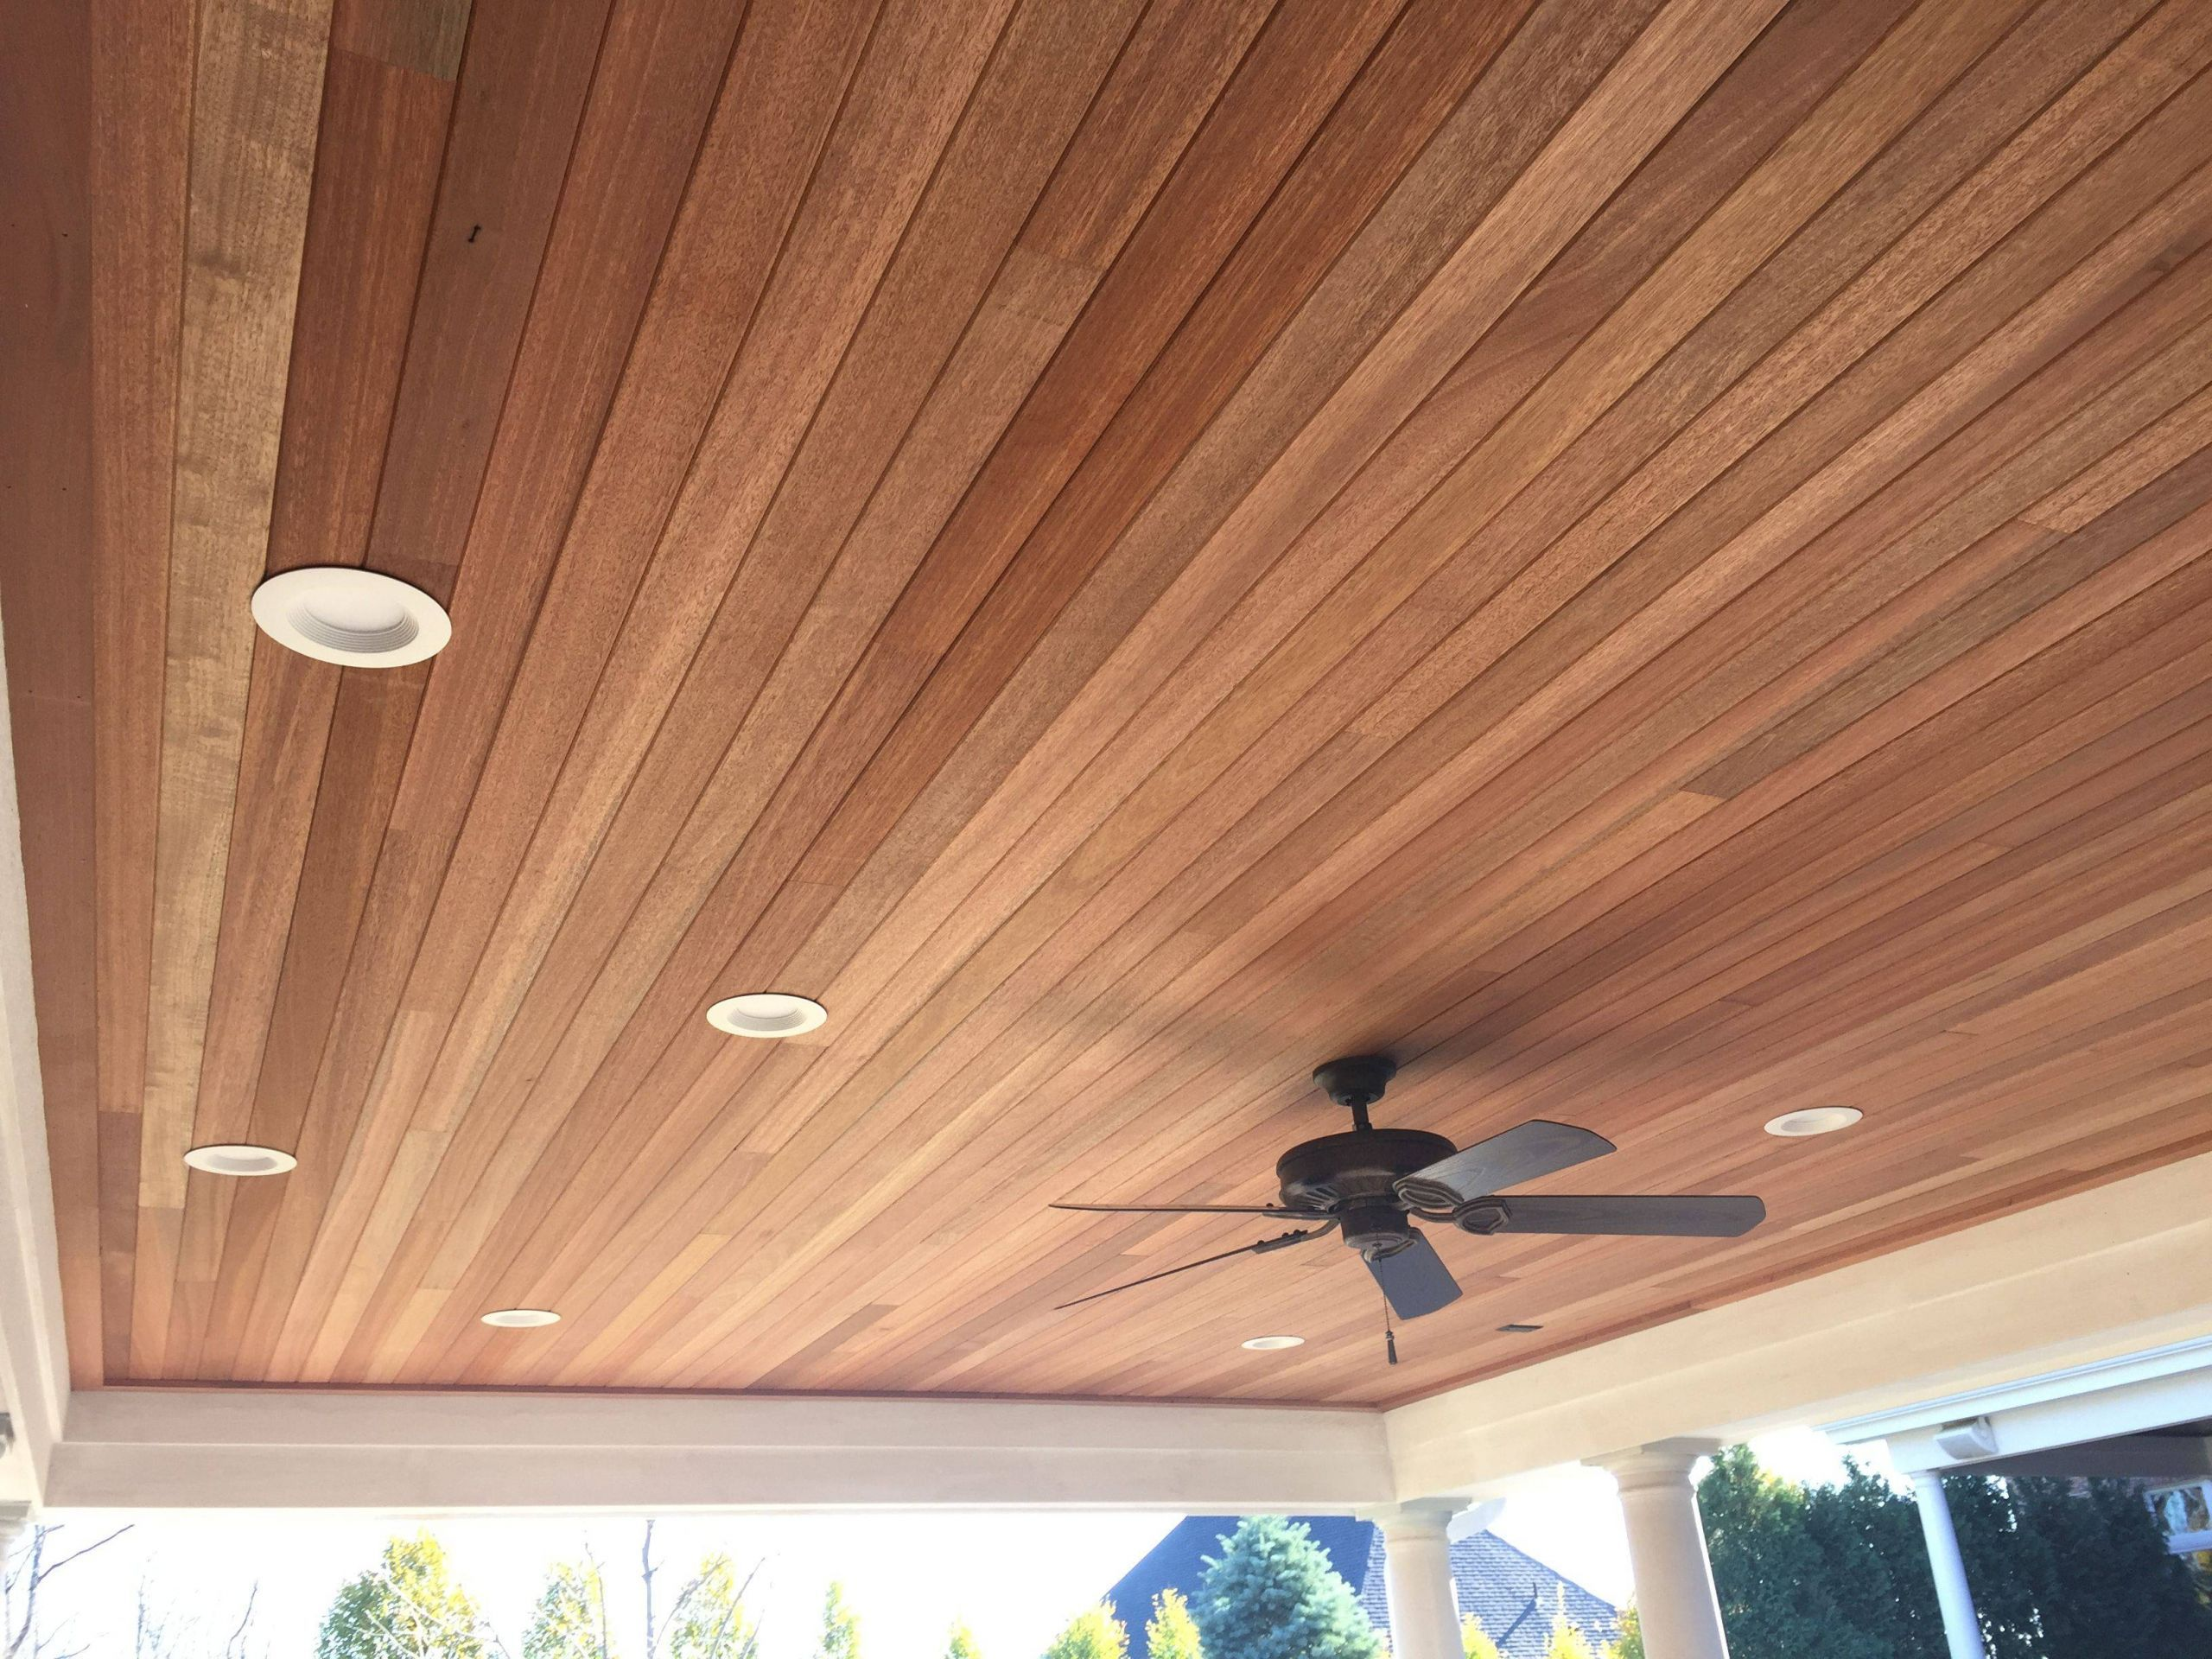 Pin by Jorge on Backyard patio | Tongue and groove ceiling ...